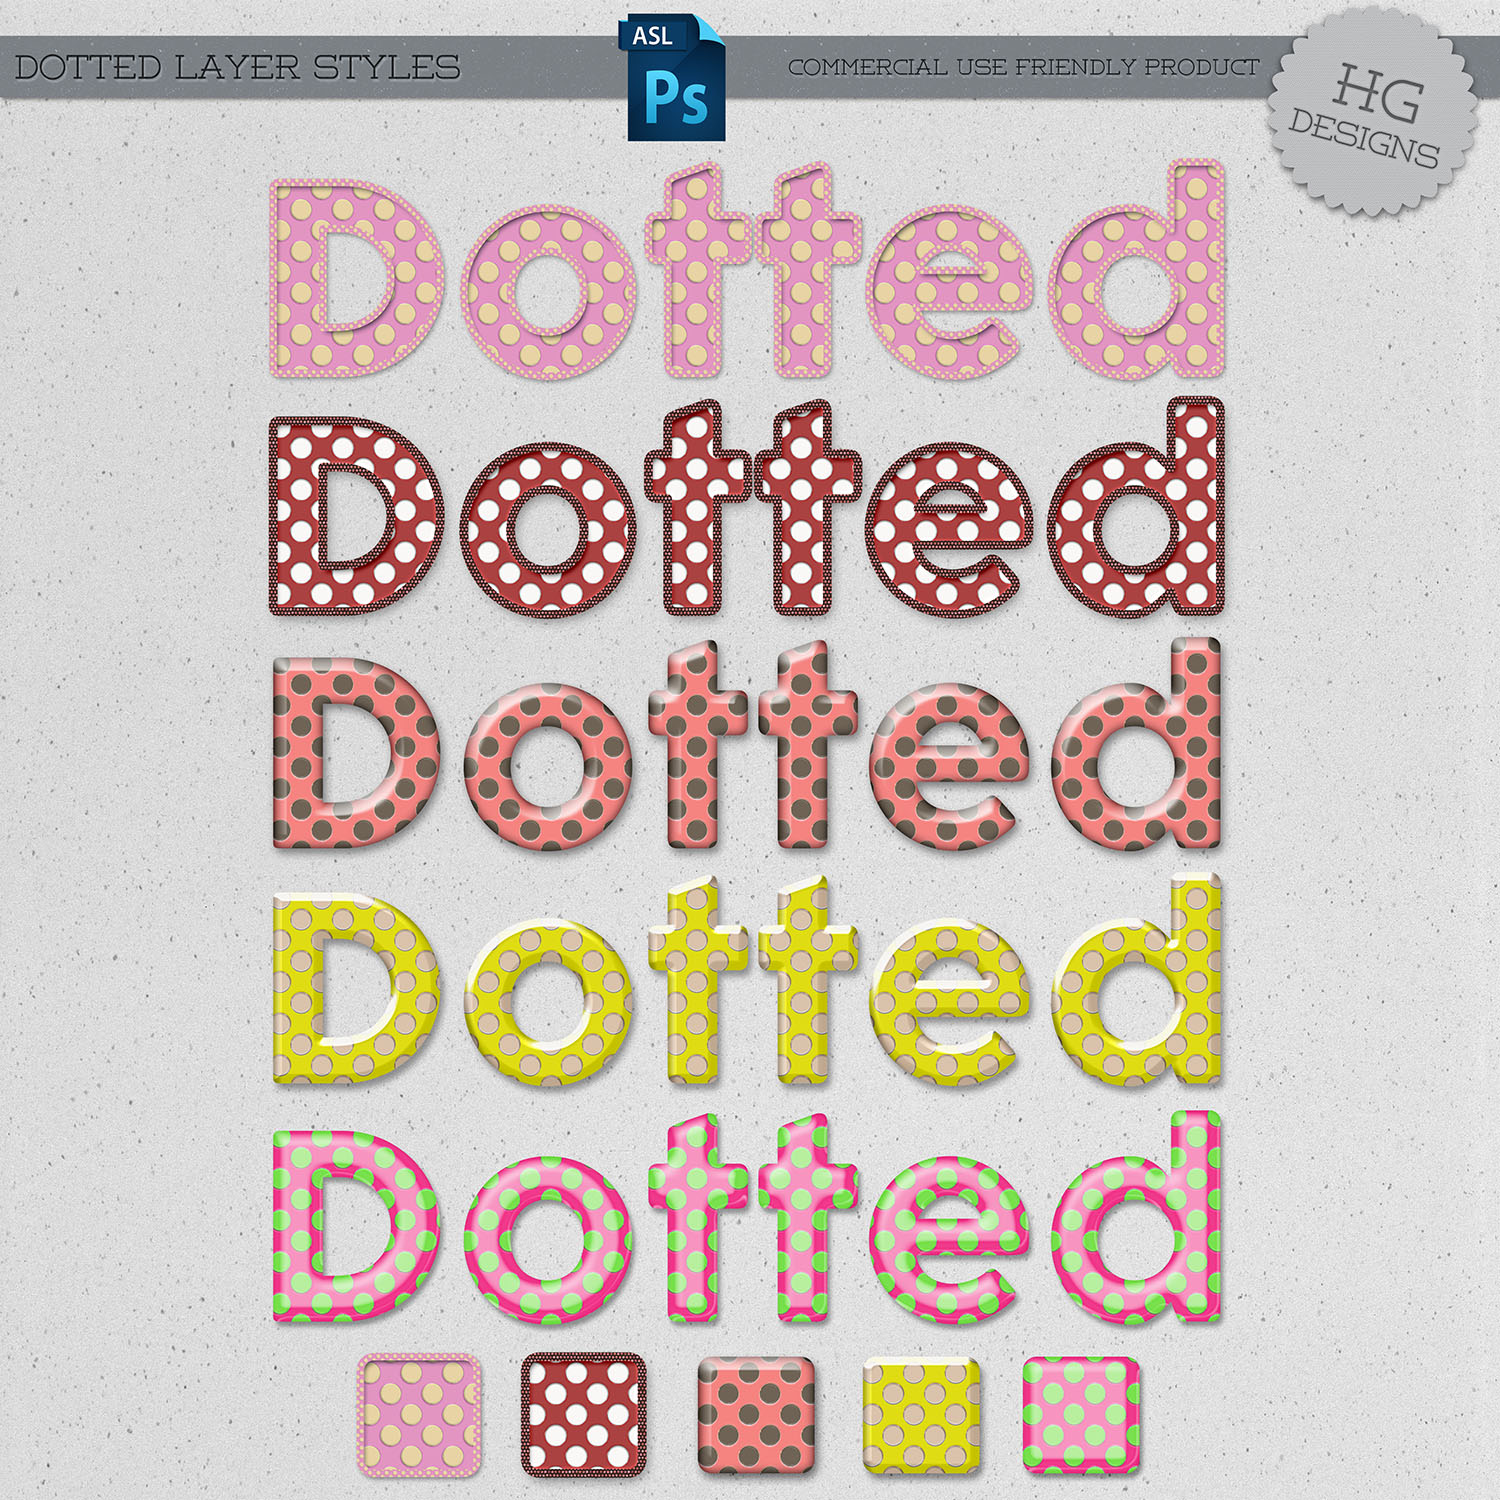 Styles: Dotted